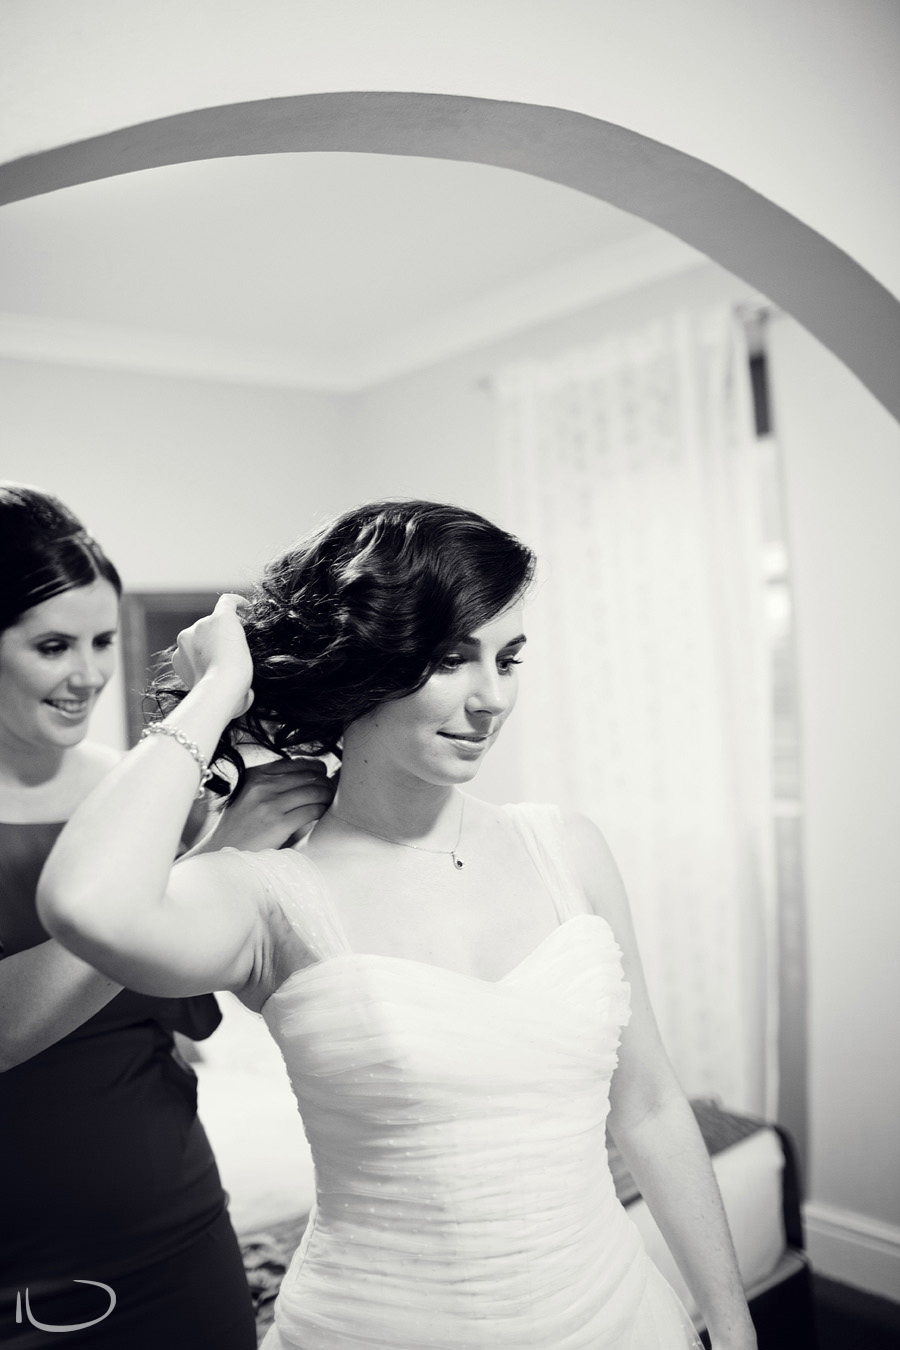 Sydney Wedding Photographer: Bridesmaid putting necklace on bride